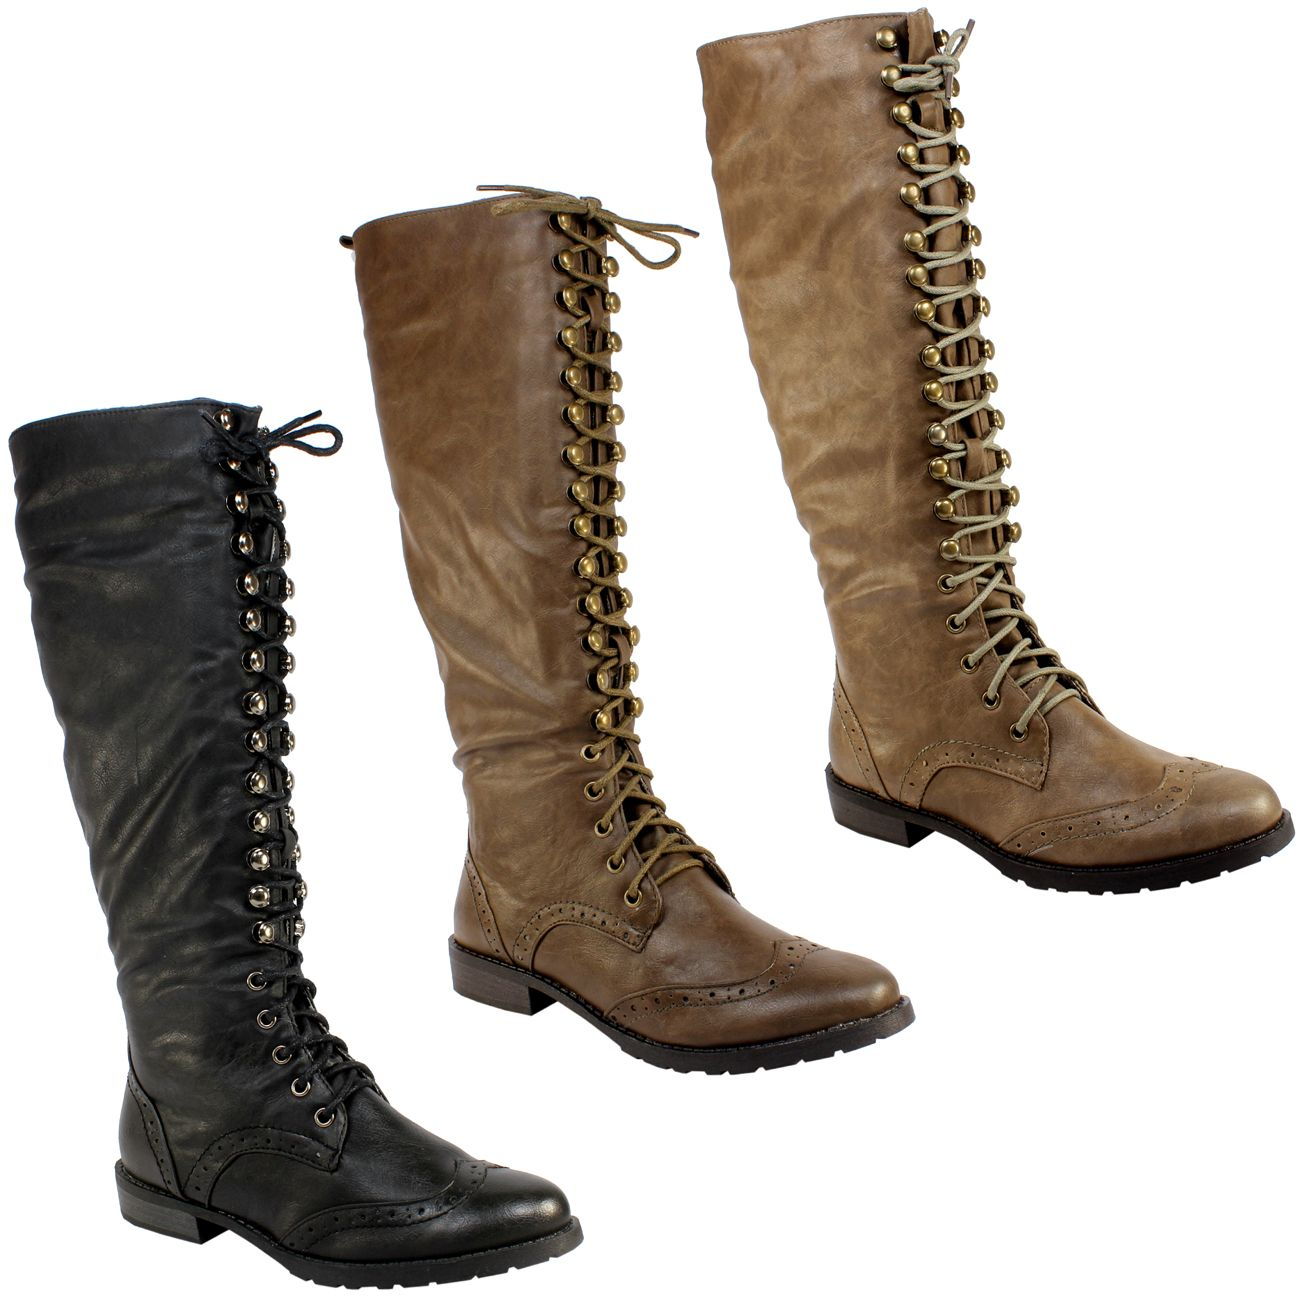 Womens tall lace up knee high military boots ladies new 3-8 | Lace ...